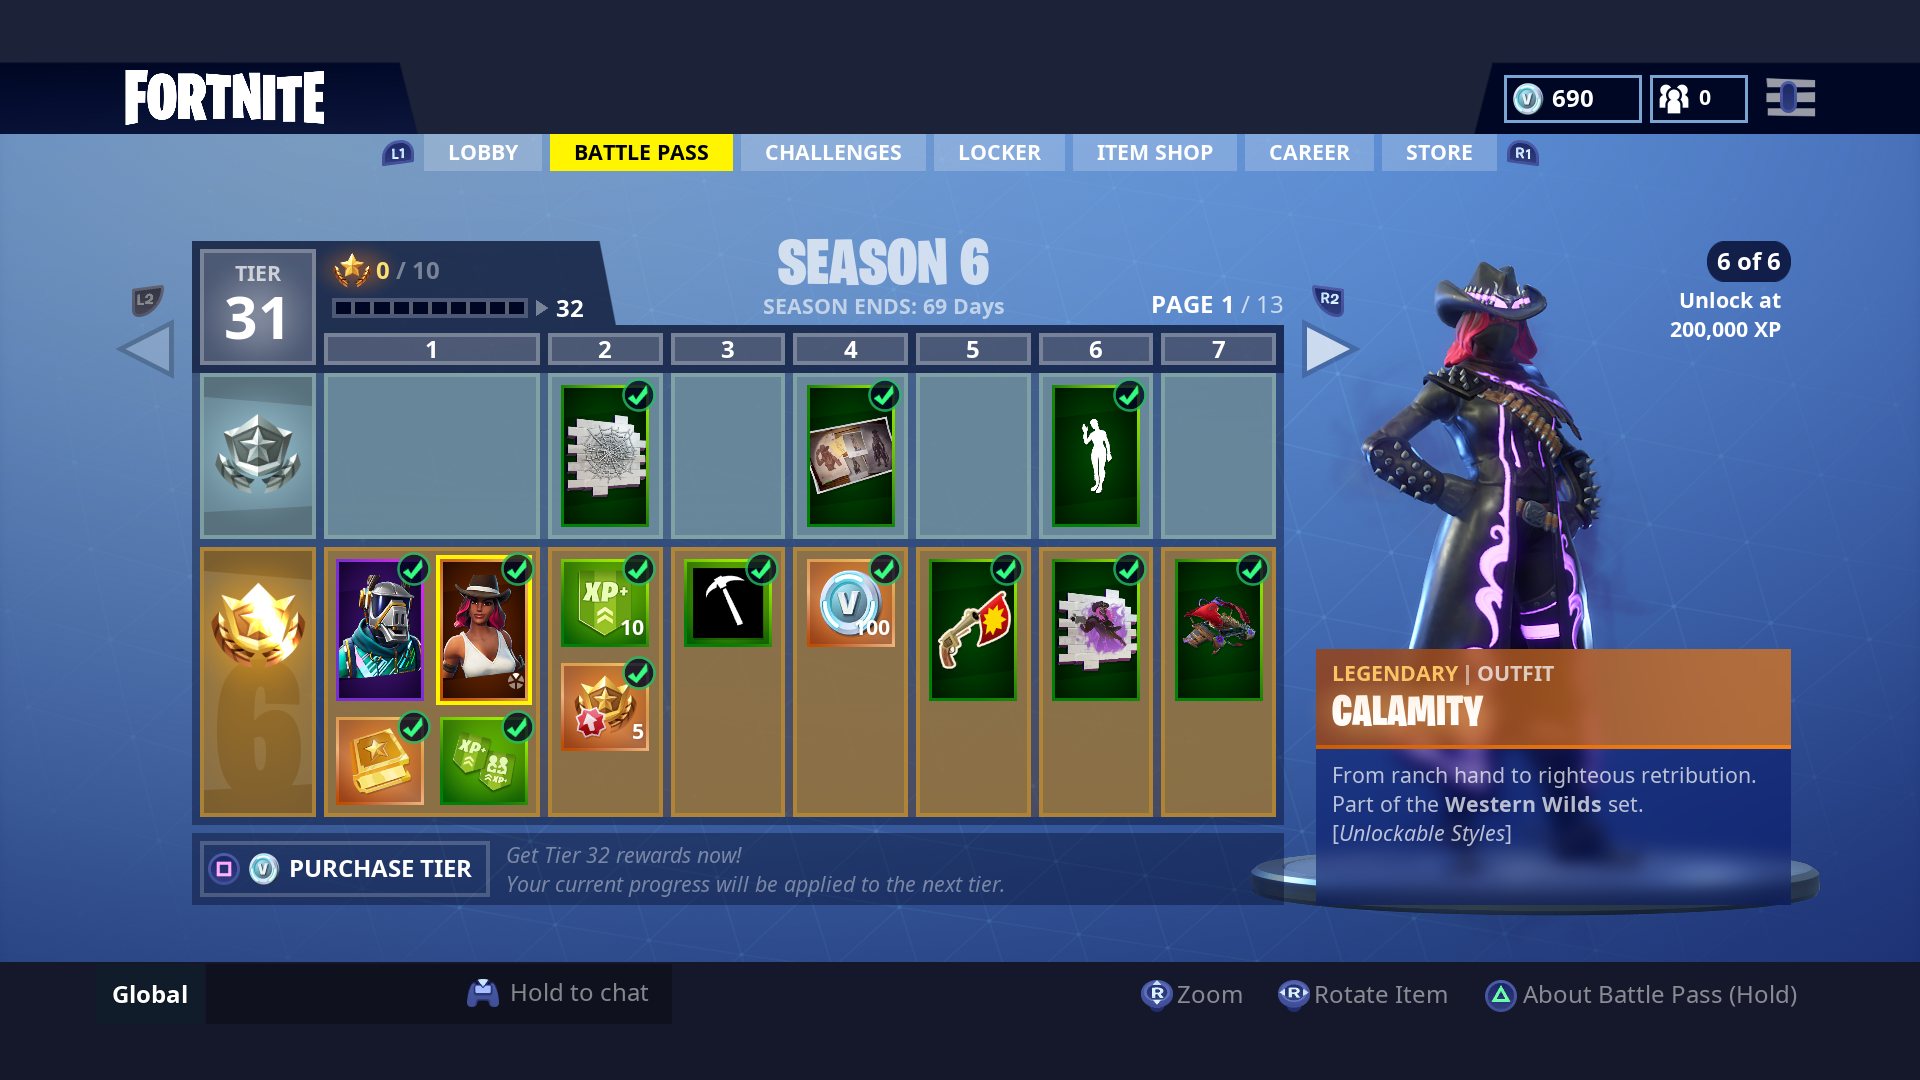 Fortnite Season 6 Guide How To Unlock The Calamity And Dire Skins